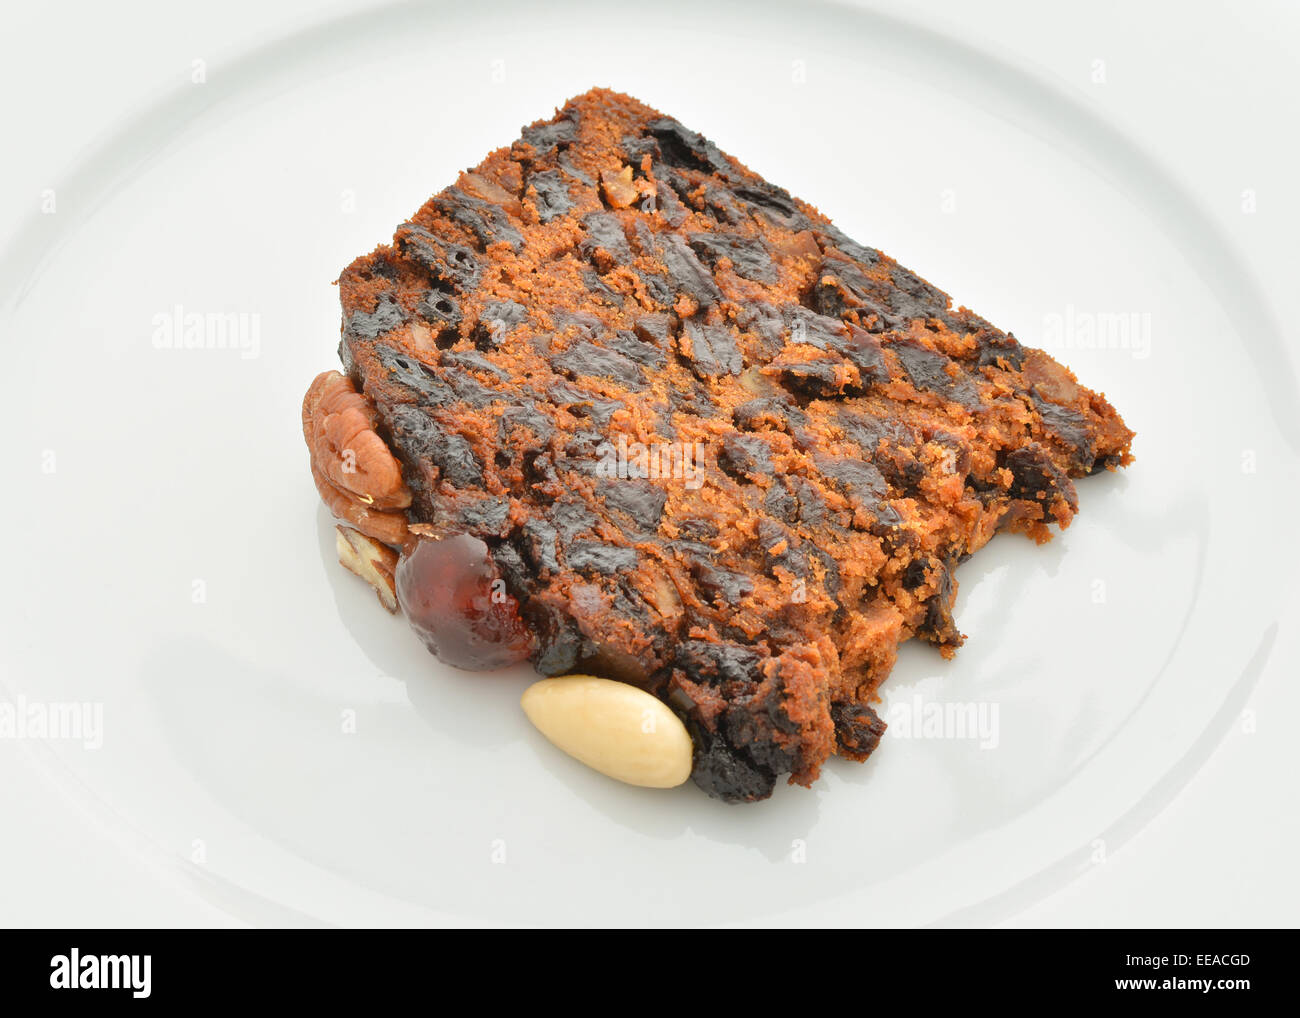 Slice of homemade fruitcake decorated with nuts and cherries on white plate - Stock Image